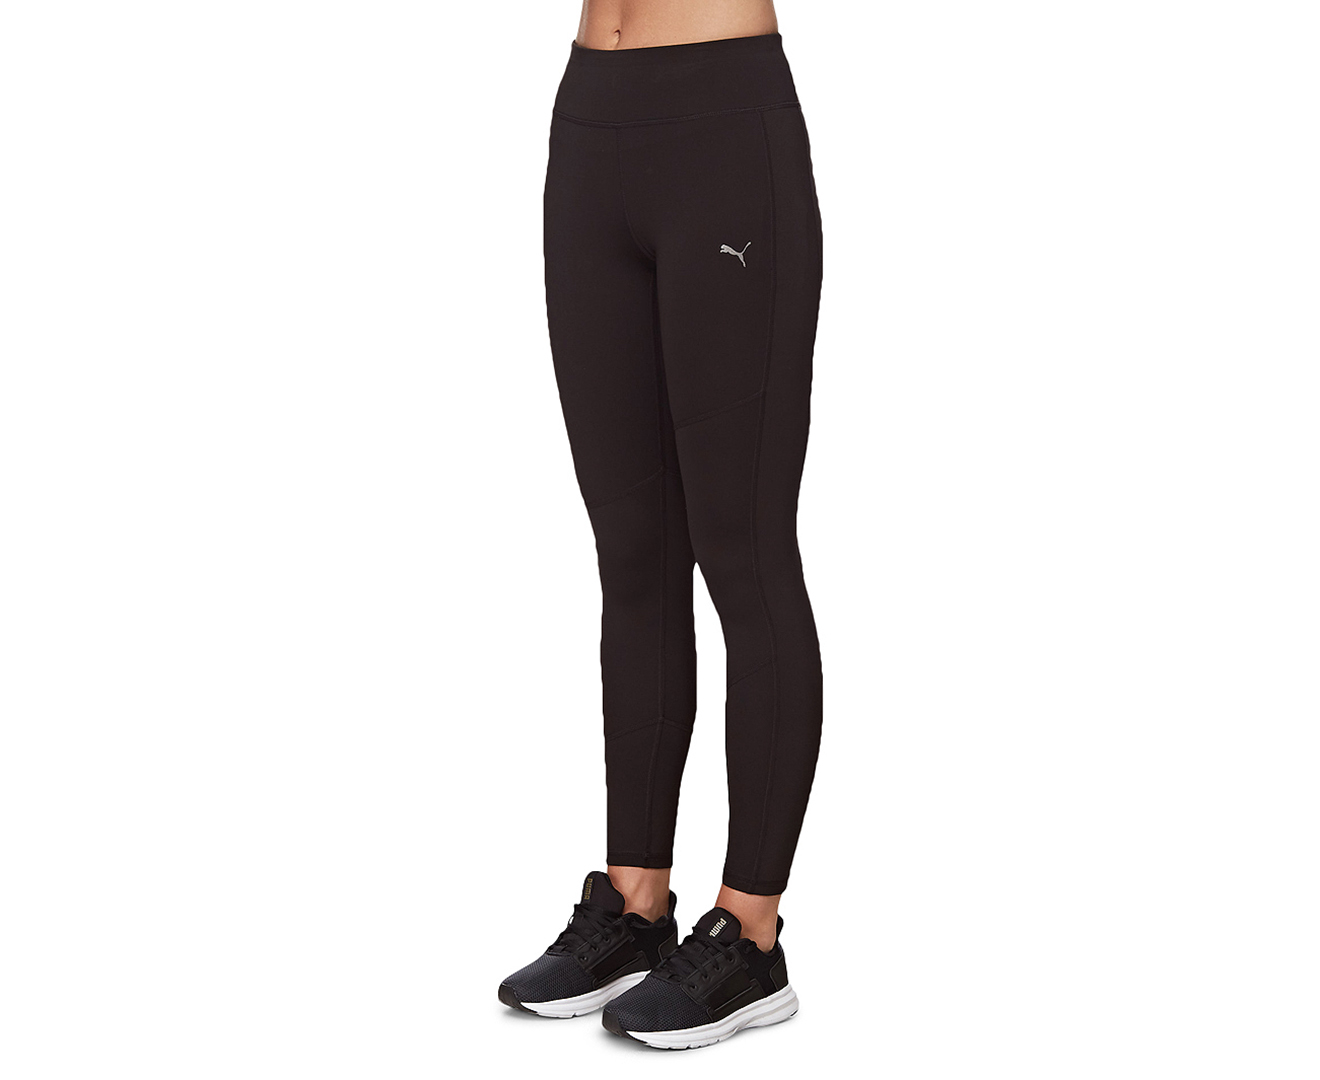 designer mode olika design stort urval av Puma Women's A.C.E Always On Solid 7/8 Tight - Puma Black | Catch ...